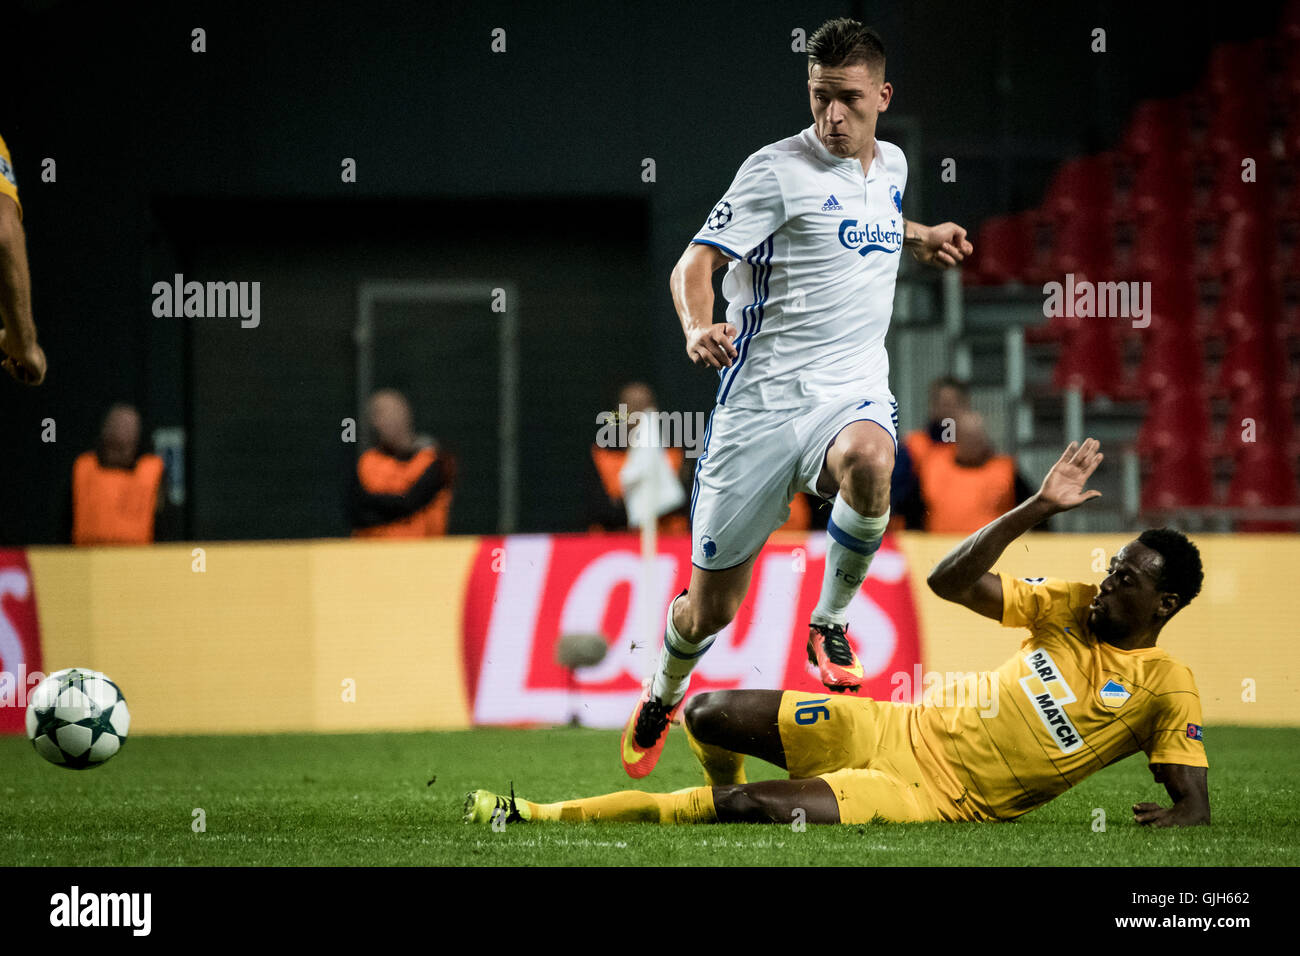 Denmark, Copenhagen, August 16th 2016. Benjamin Verbic (7) of FC Copenhagen is tackled by APOEL's Vinicius (16) Stock Photo